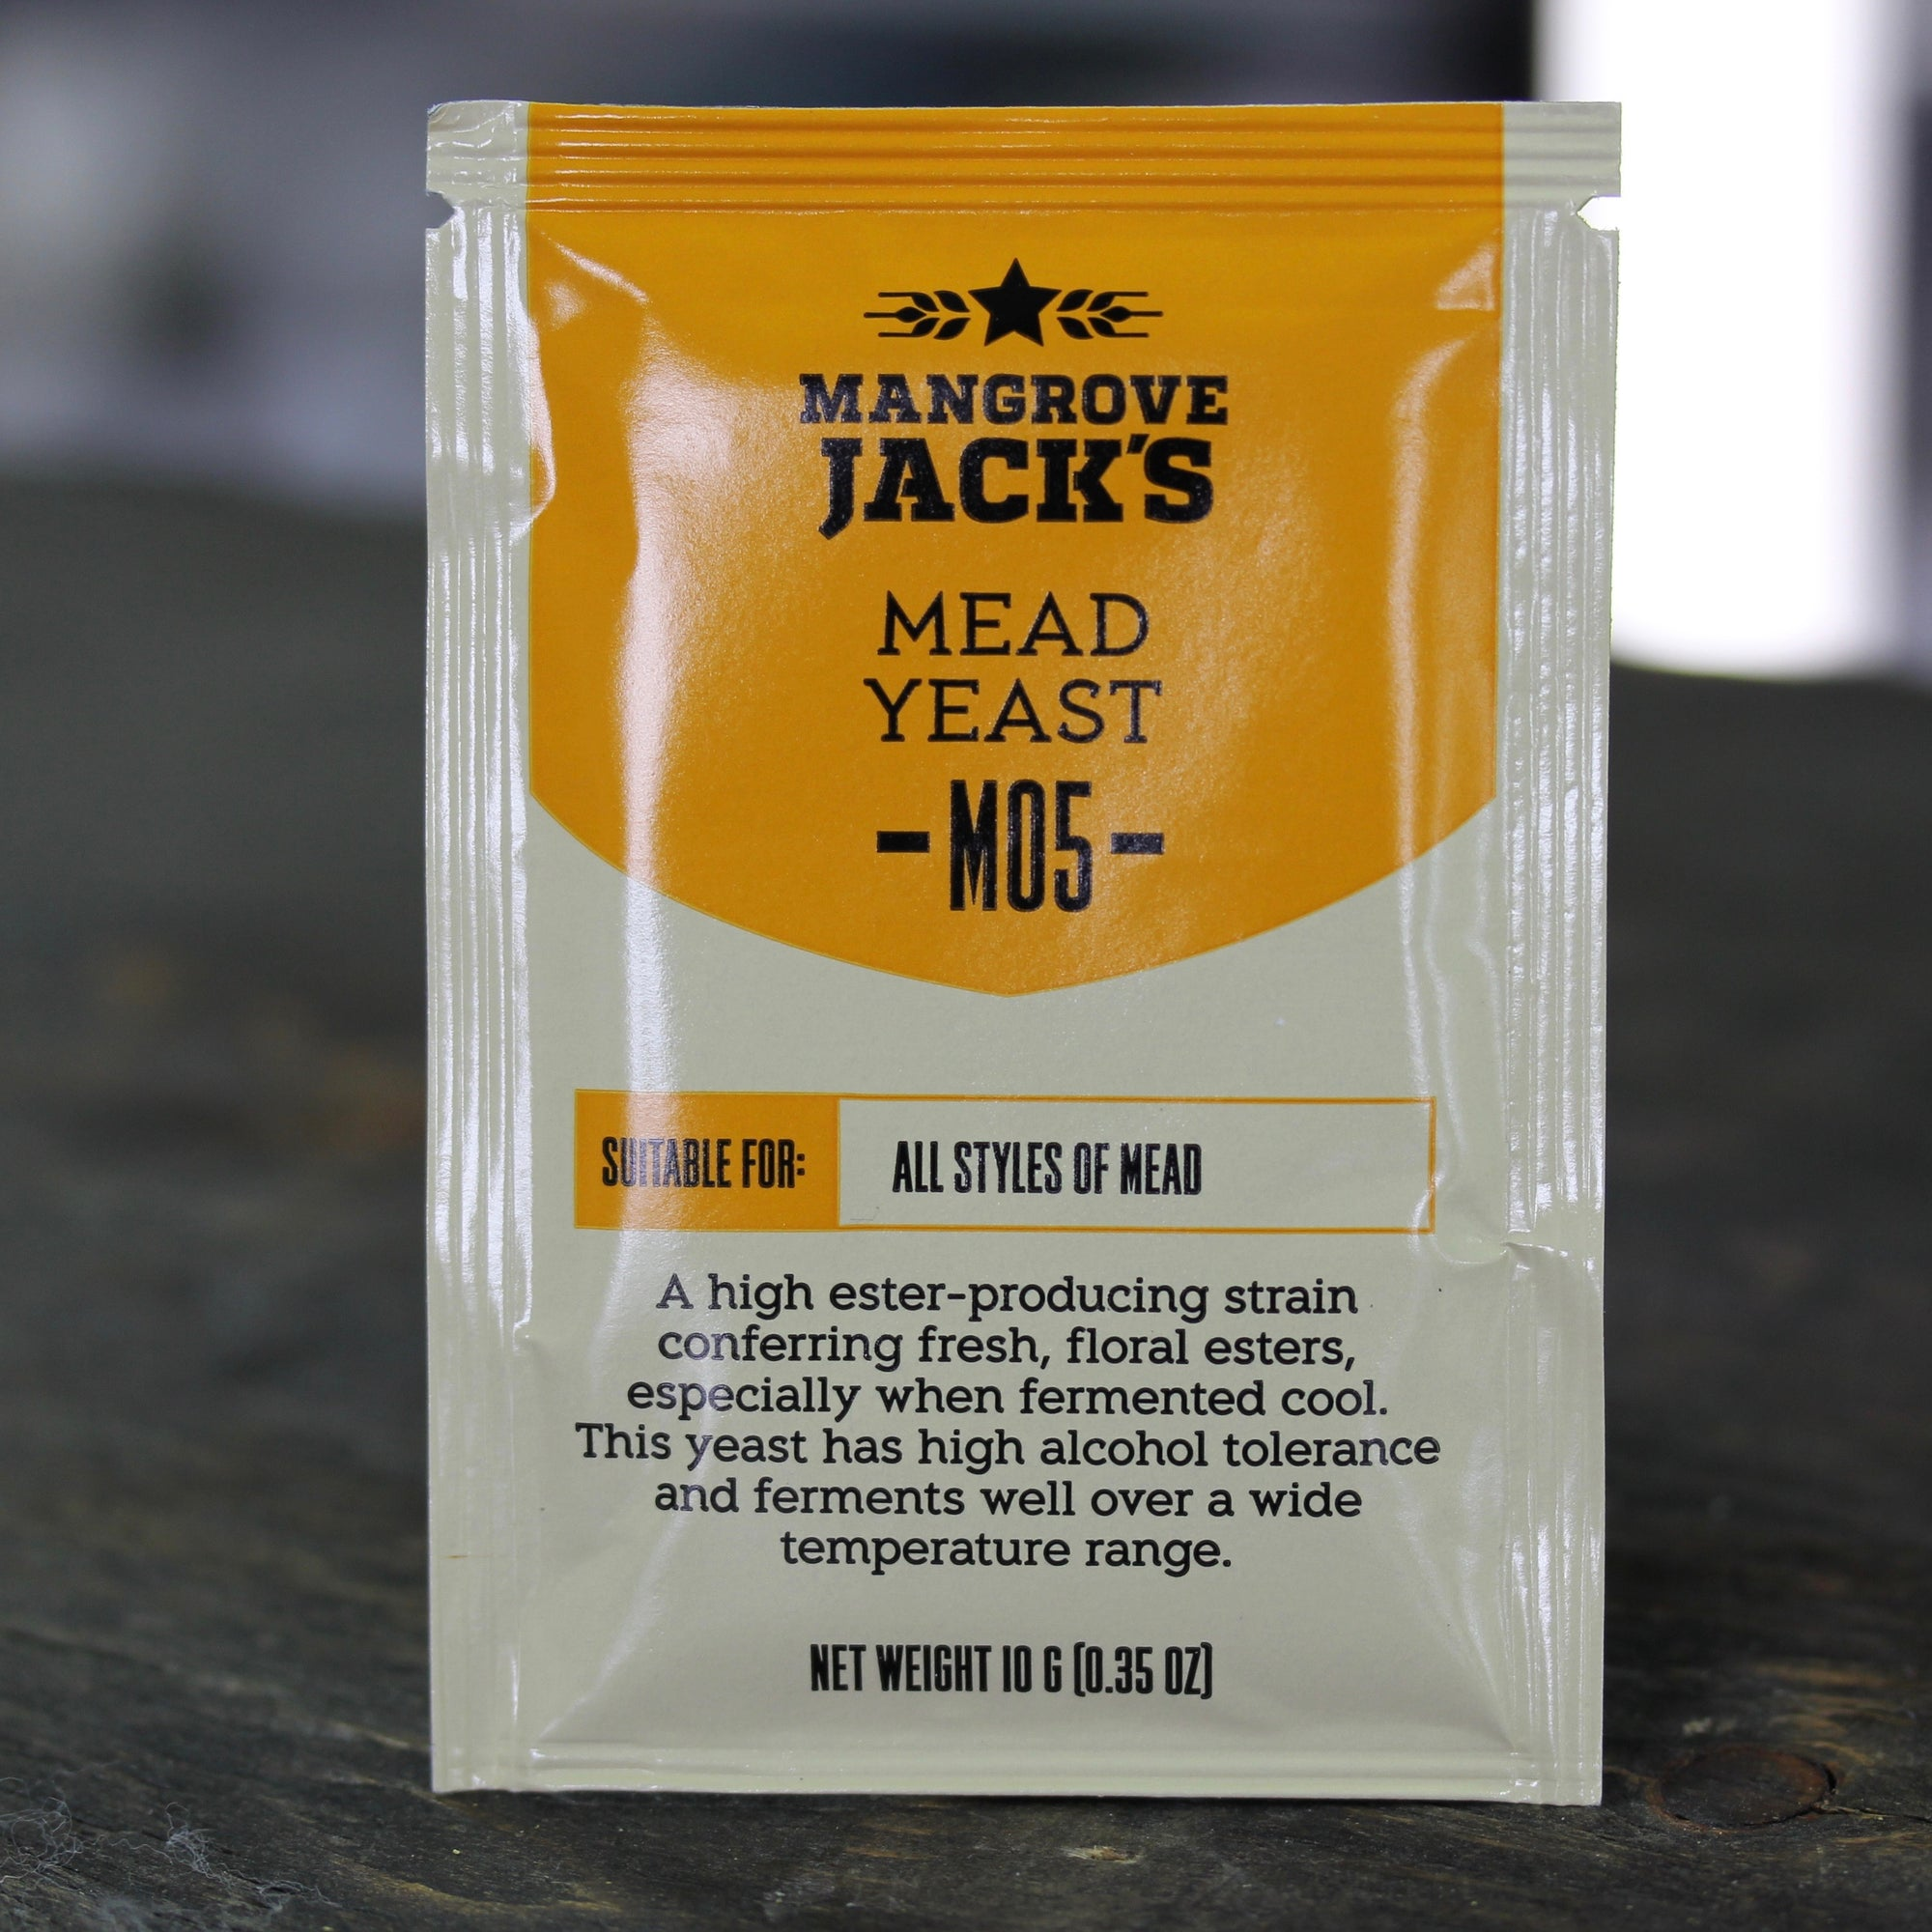 Mead Yeast - M06